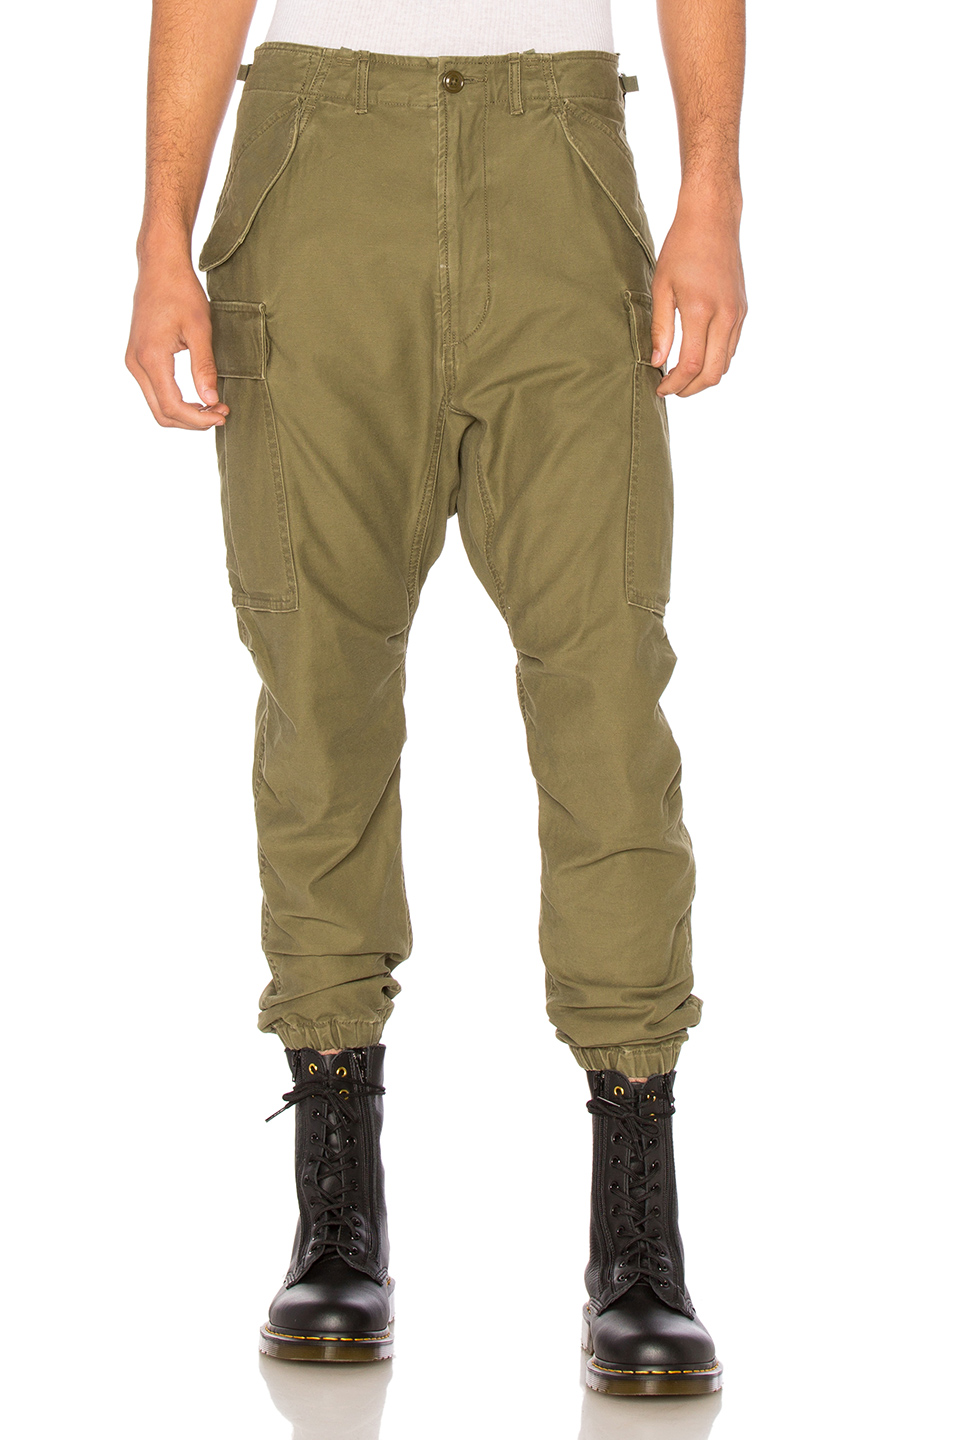 Photo of R13 Surplus Military Cargo Pants in Green - shop R13 menswear